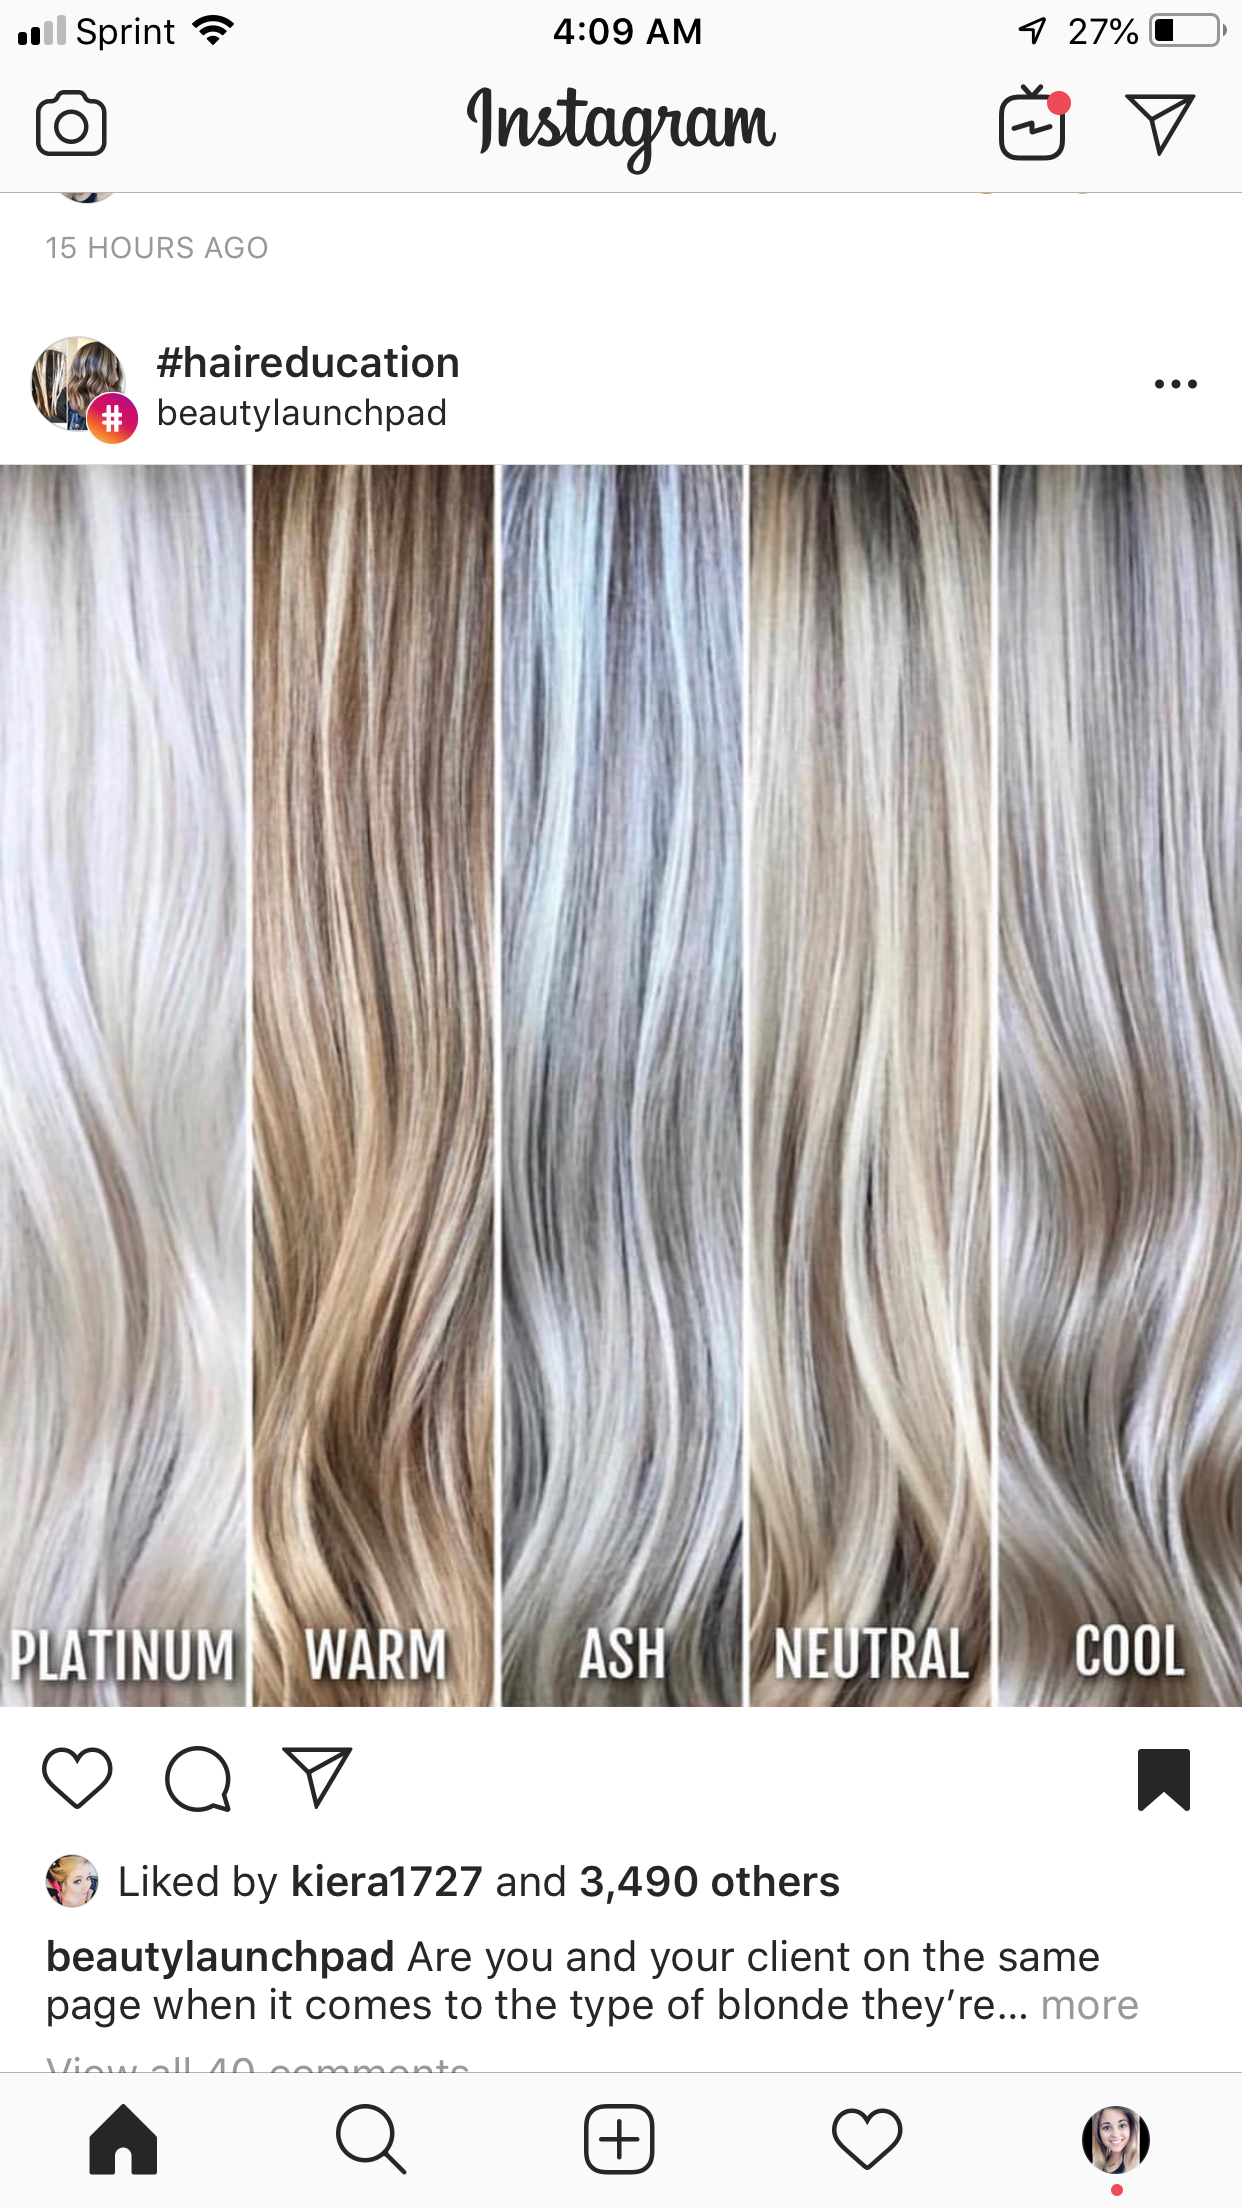 Different Tones Of Blondes Blonde Hair Shades Blonde Hair Types Tone Hair